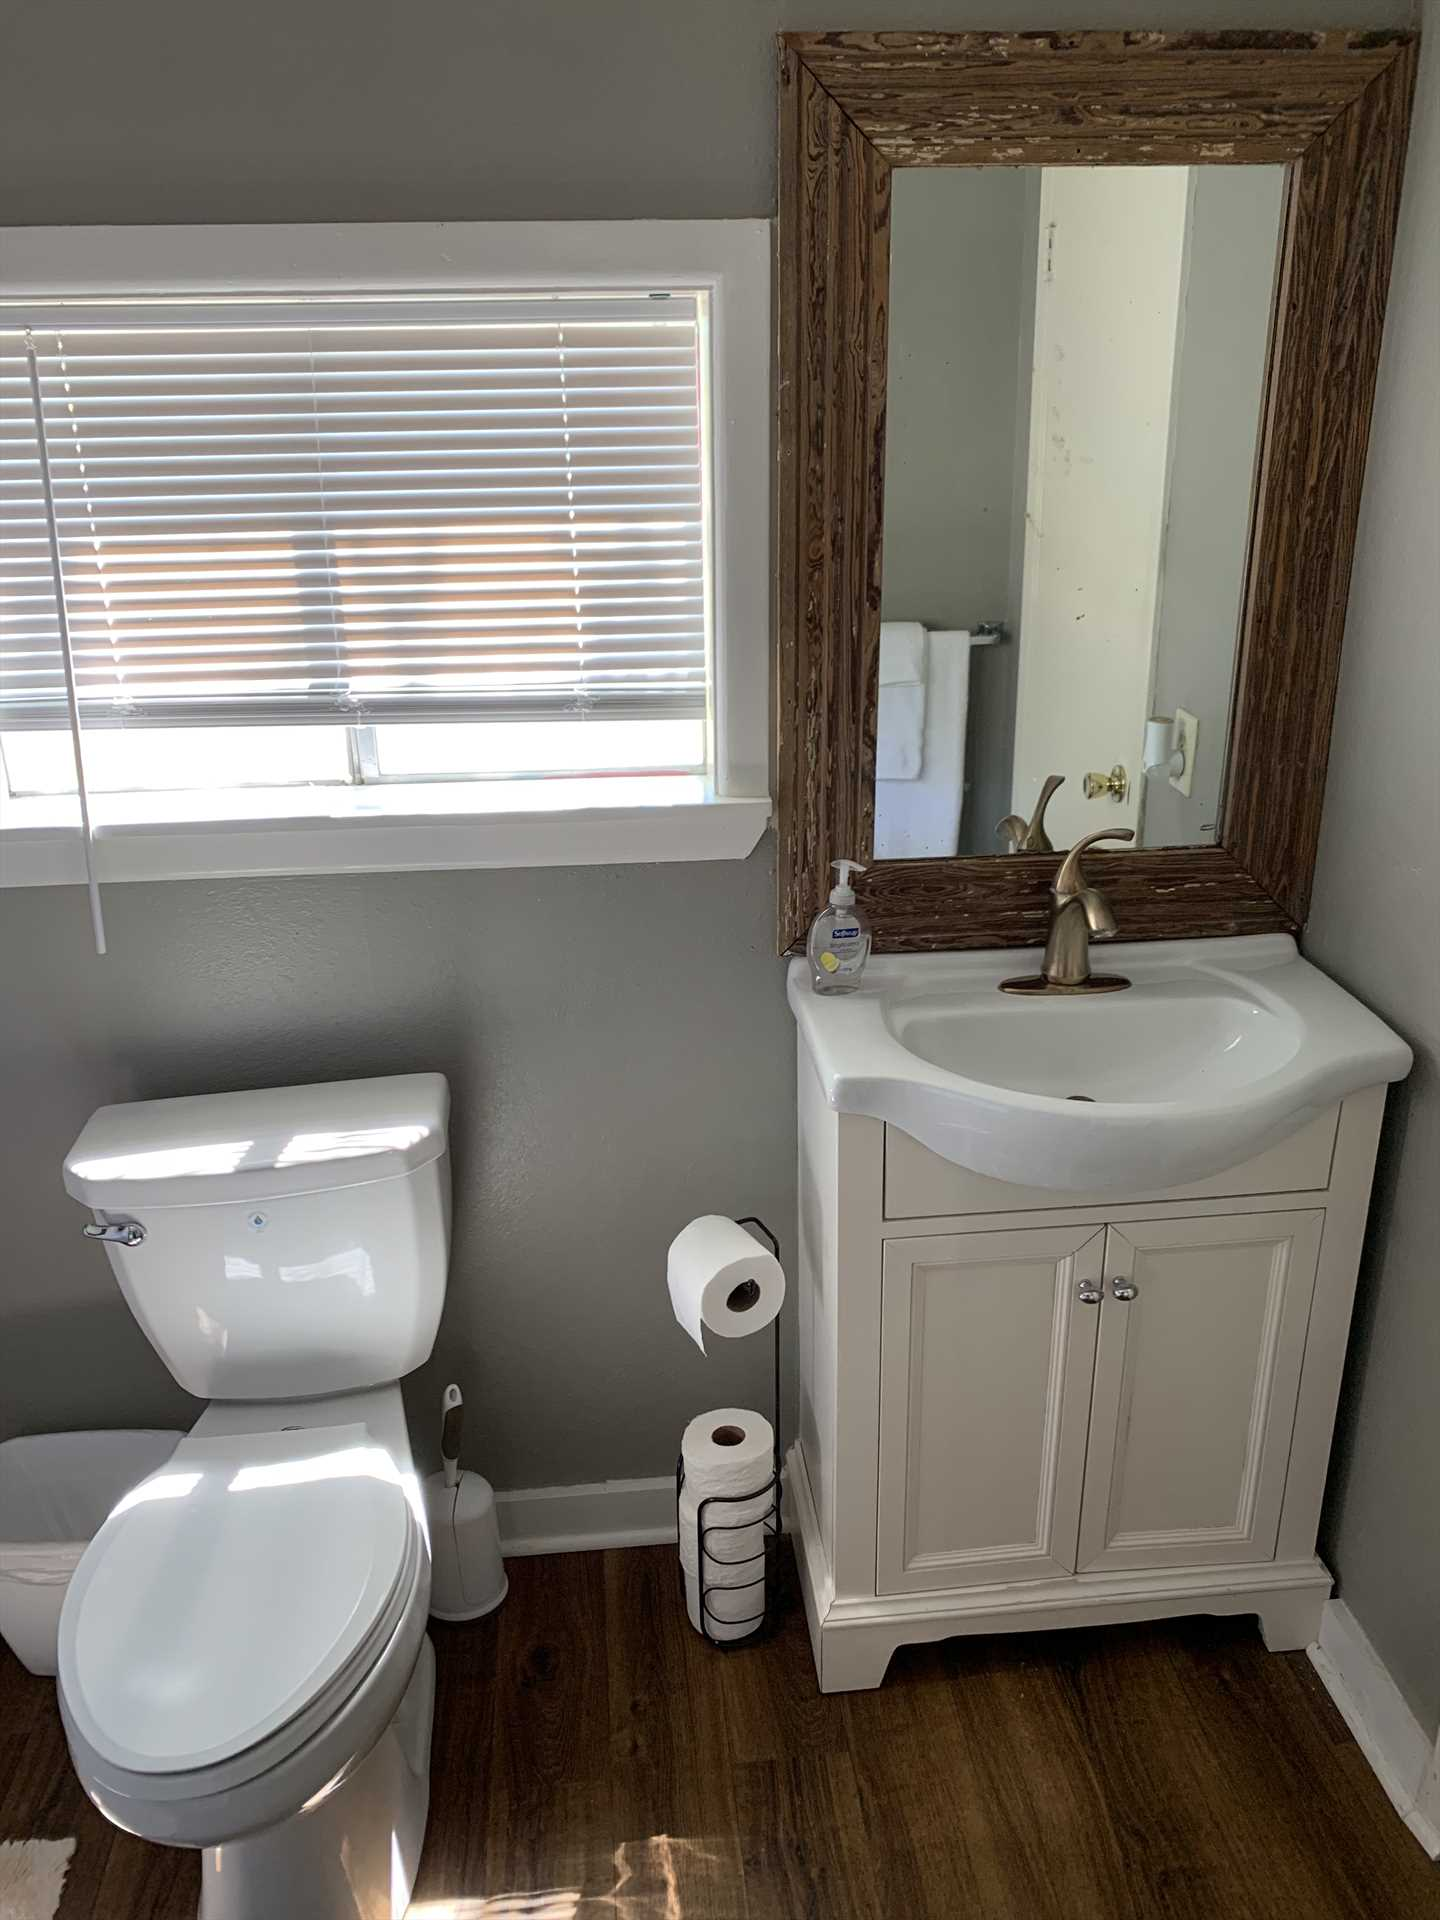 Both bathrooms in the cabin are equipped with tub and shower combos, as well as complimentary linens.